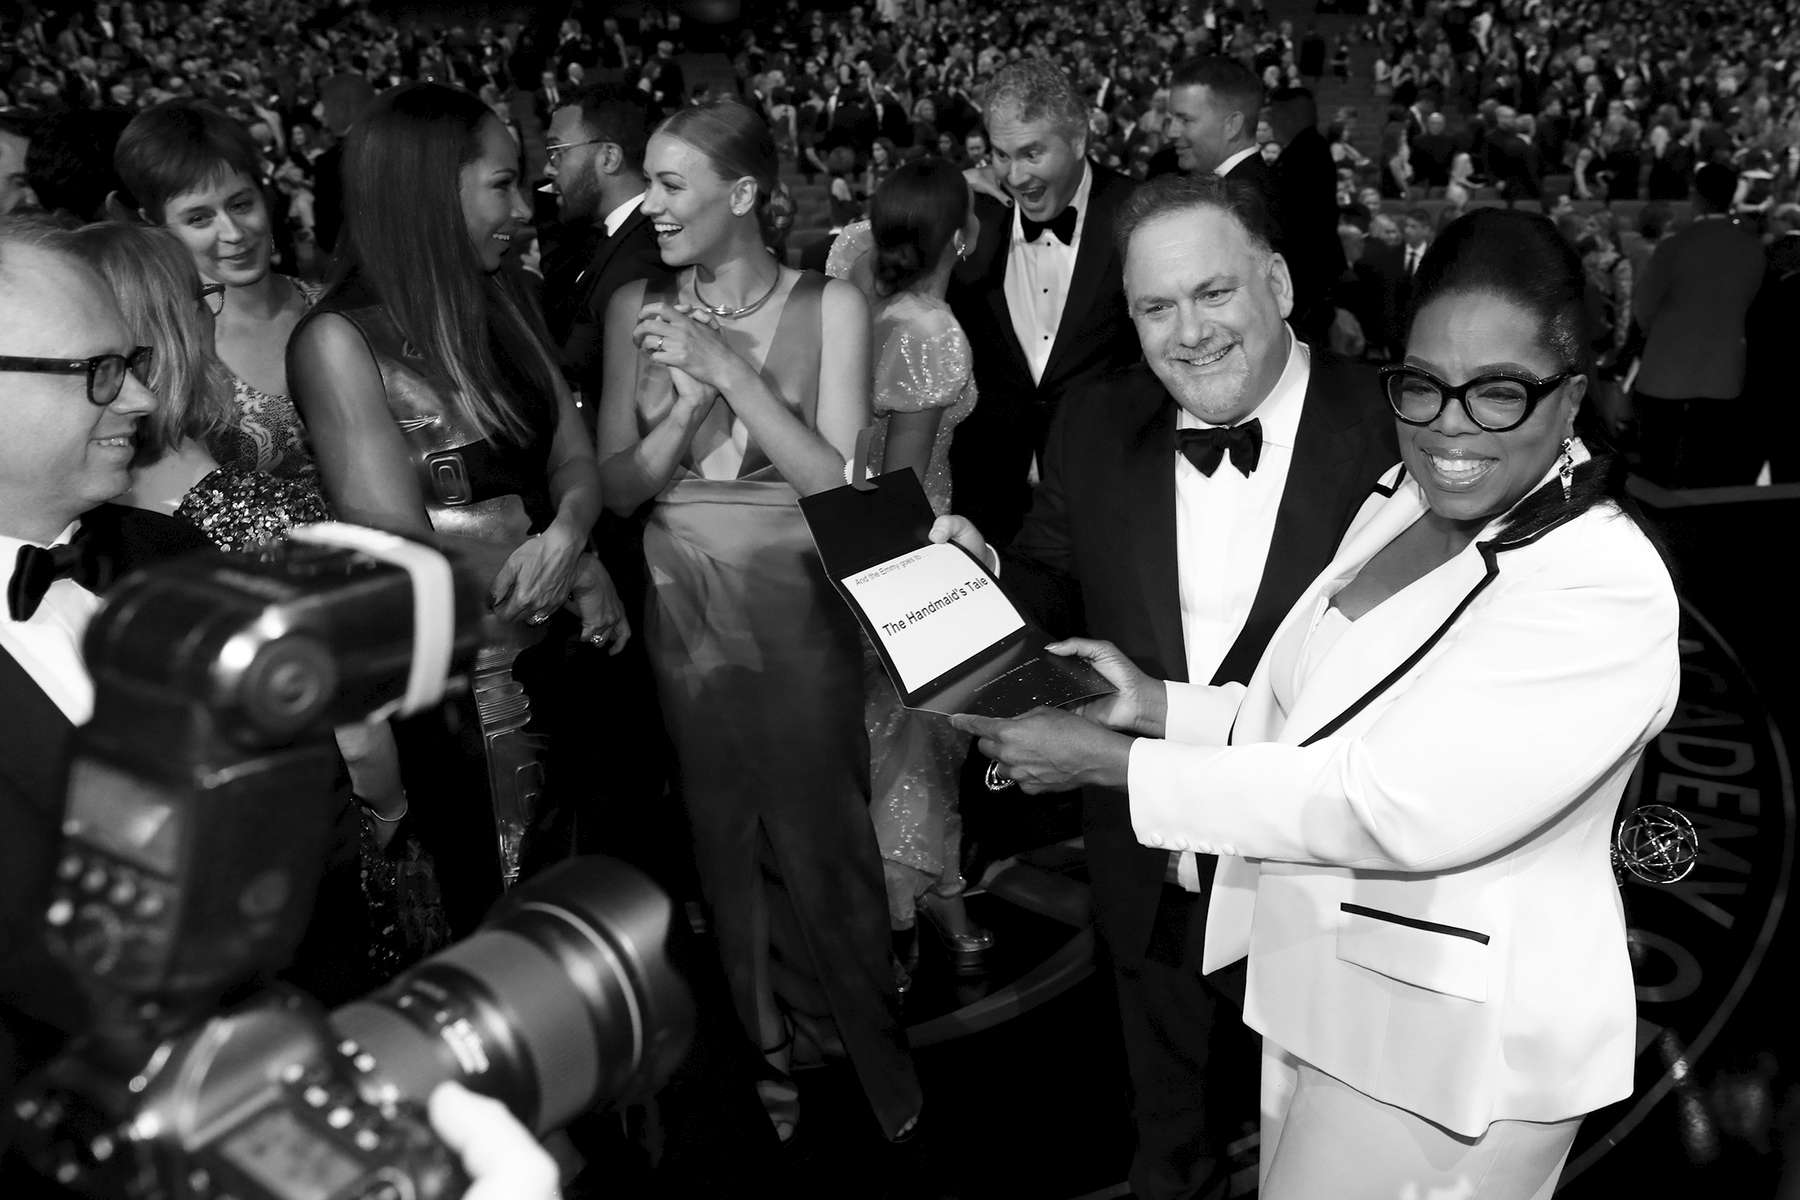 Bruce Miller, left and Oprah Winfrey at the 69th Primetime Emmy Awards on Sunday, Sept. 17, 2017, at the Microsoft Theater in Los Angeles. (Photo by Matt Sayles/Invision for the Television Academy/AP Images)